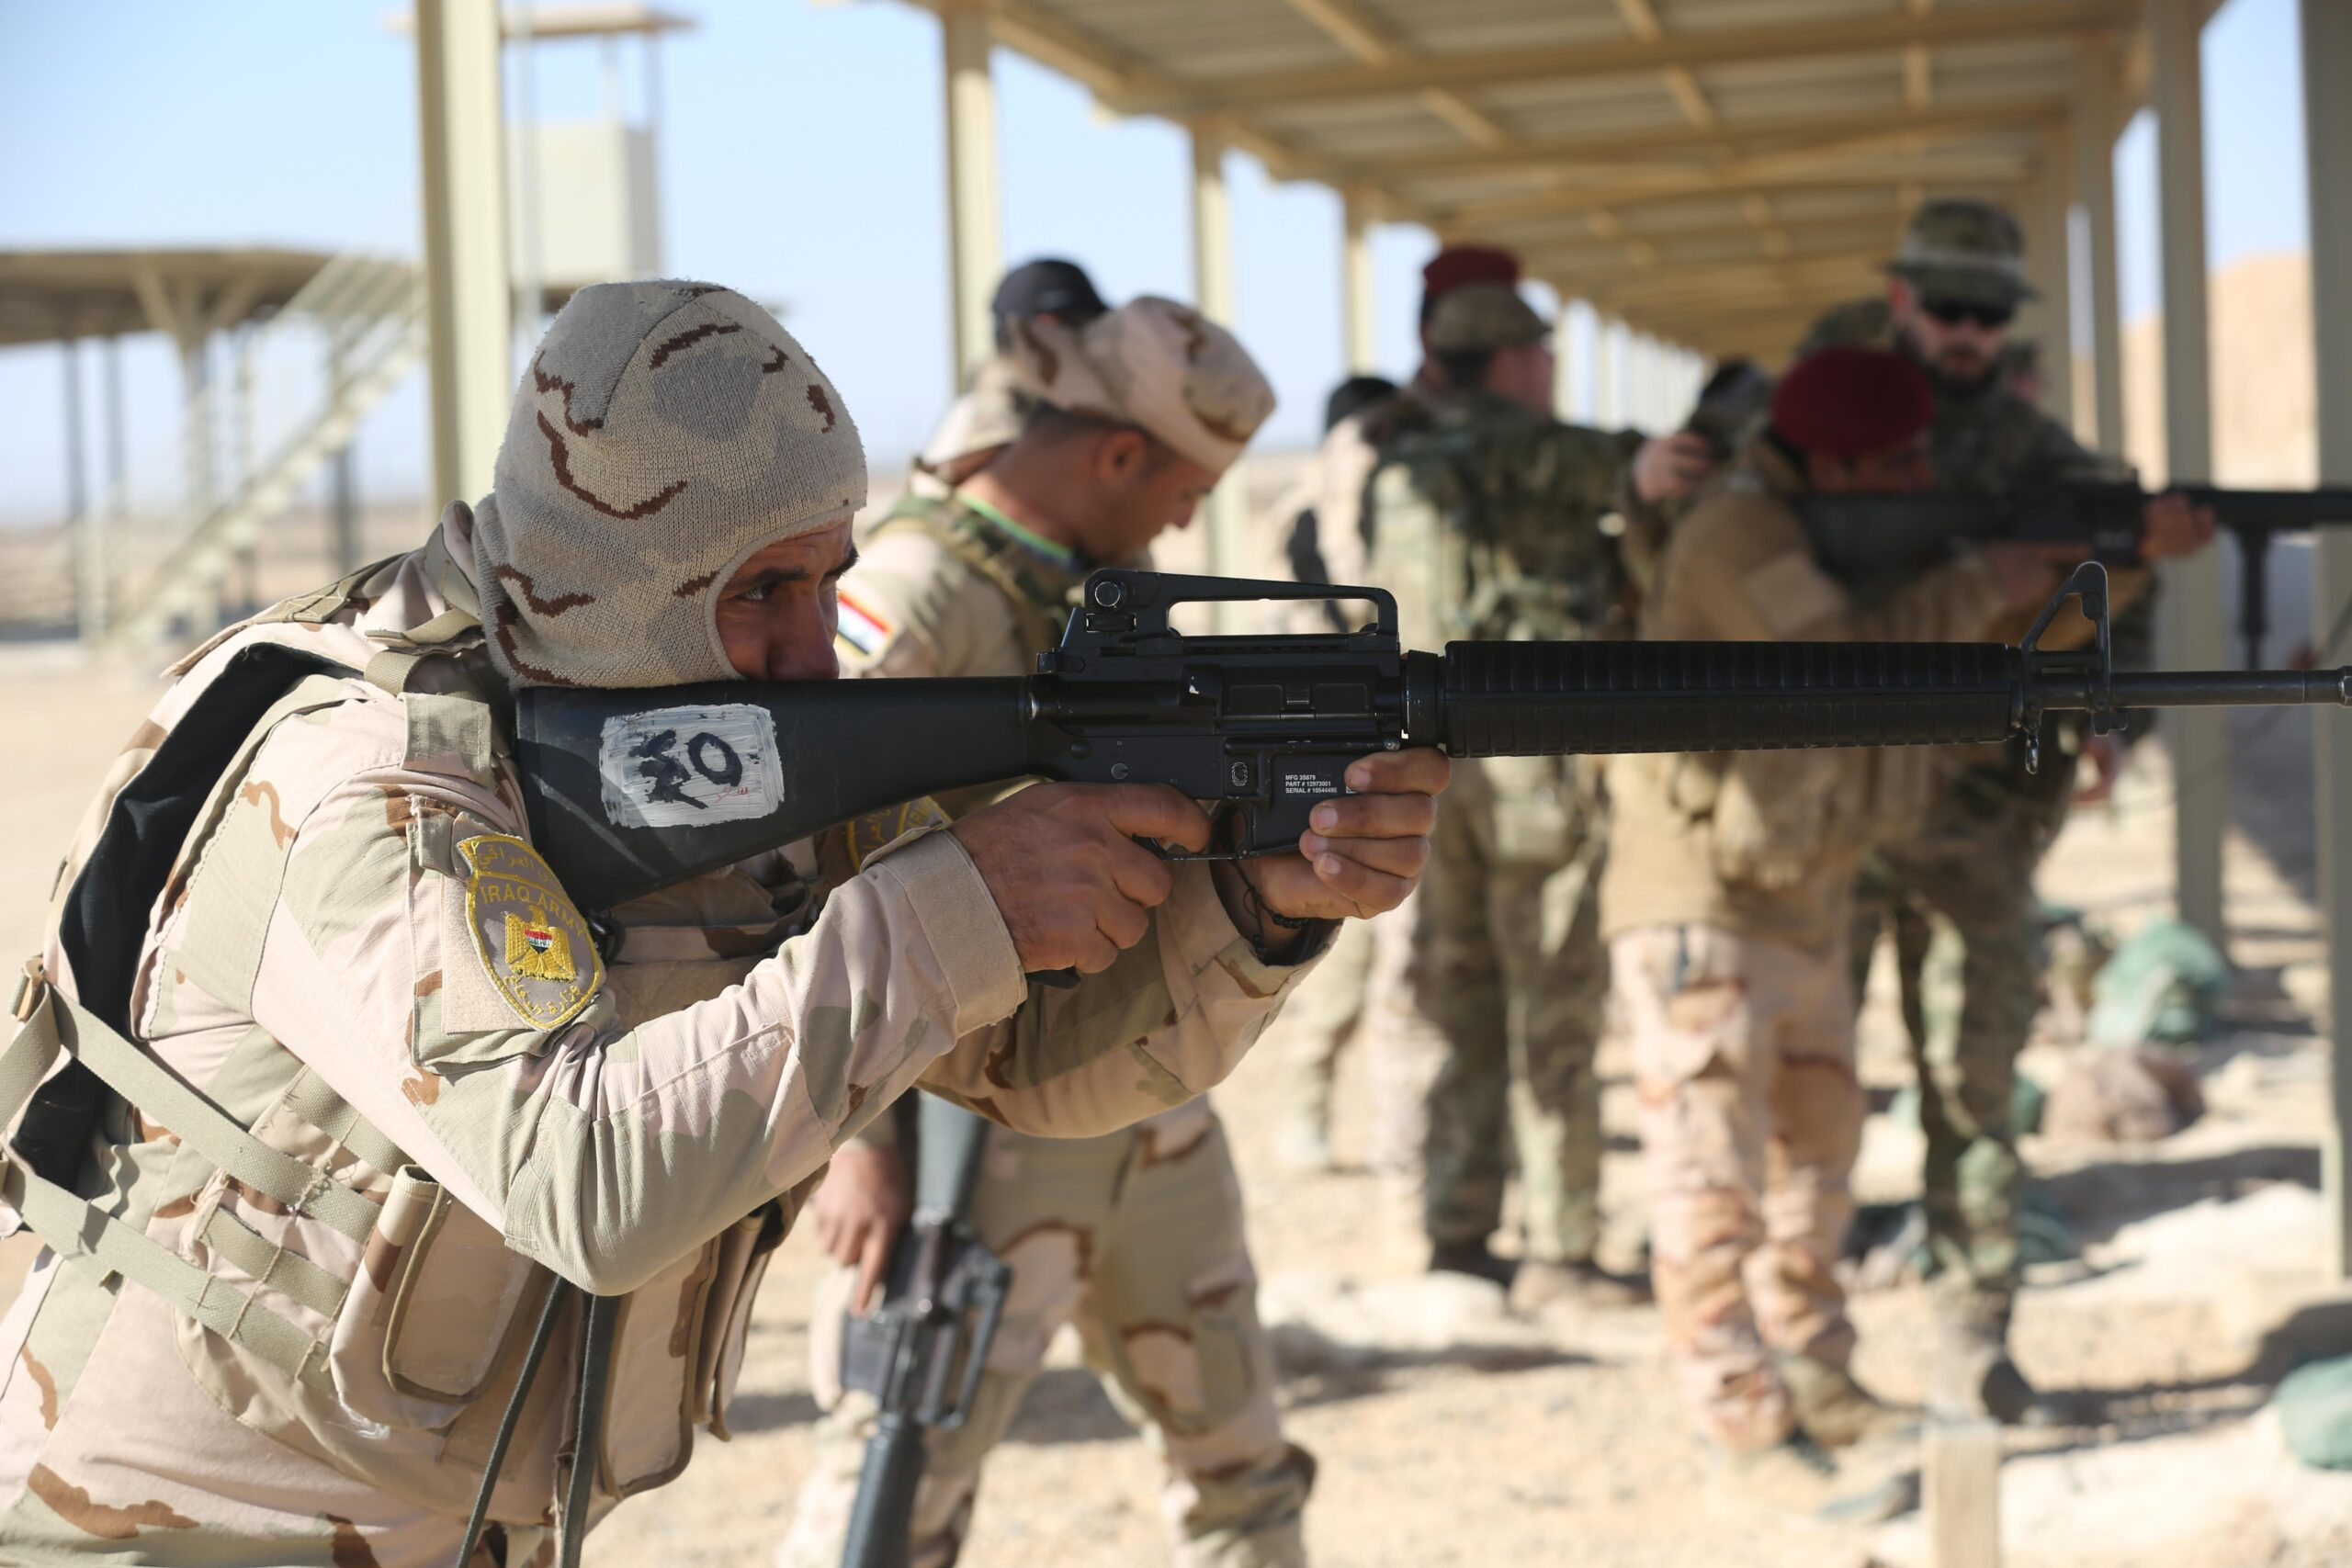 ar 15 isis spread weapons